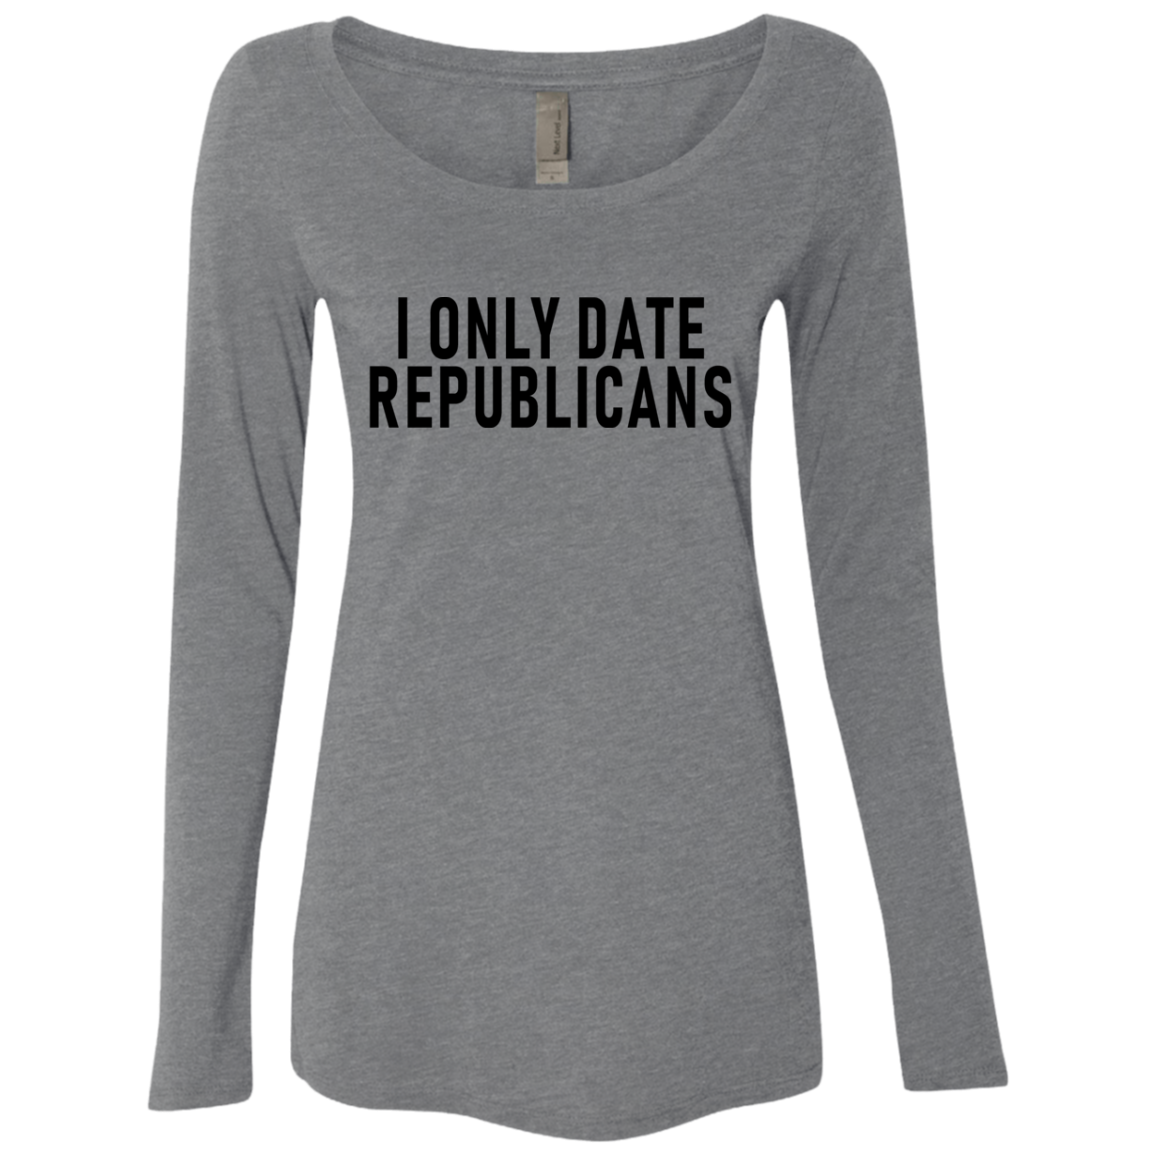 I Only Date Republicans Women's Long Sleeve Tee